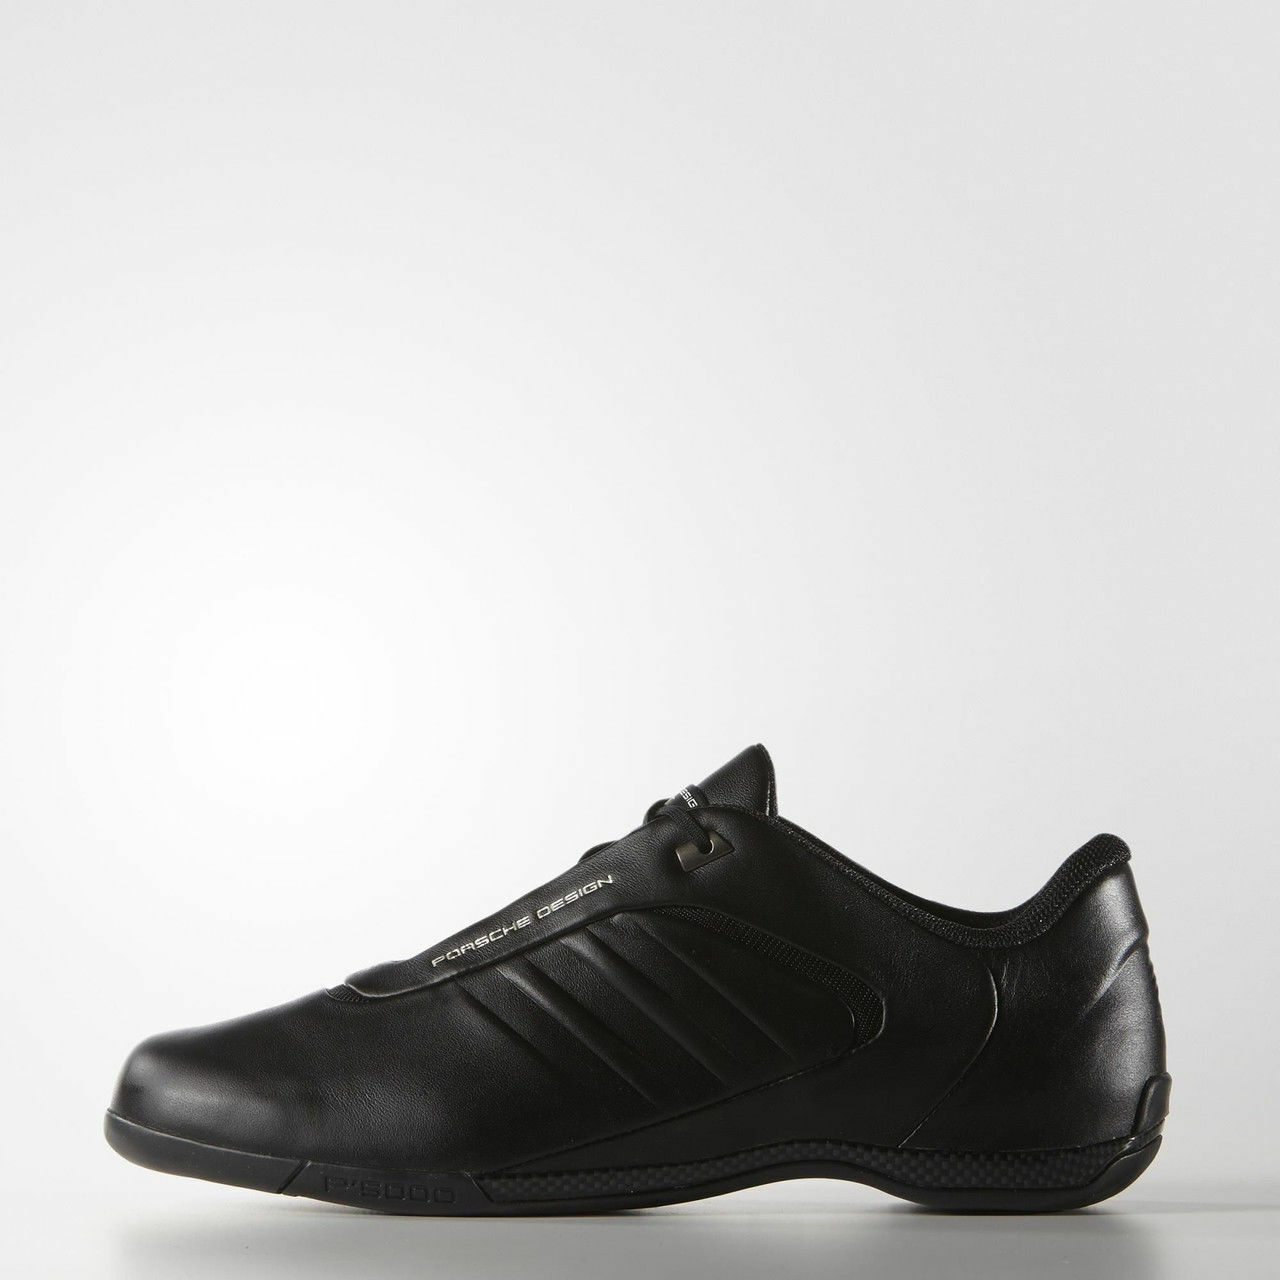 Adidas Porsche Design Athletic Mesh III 3 Leather B34158 Sport Luxe Limited Rare